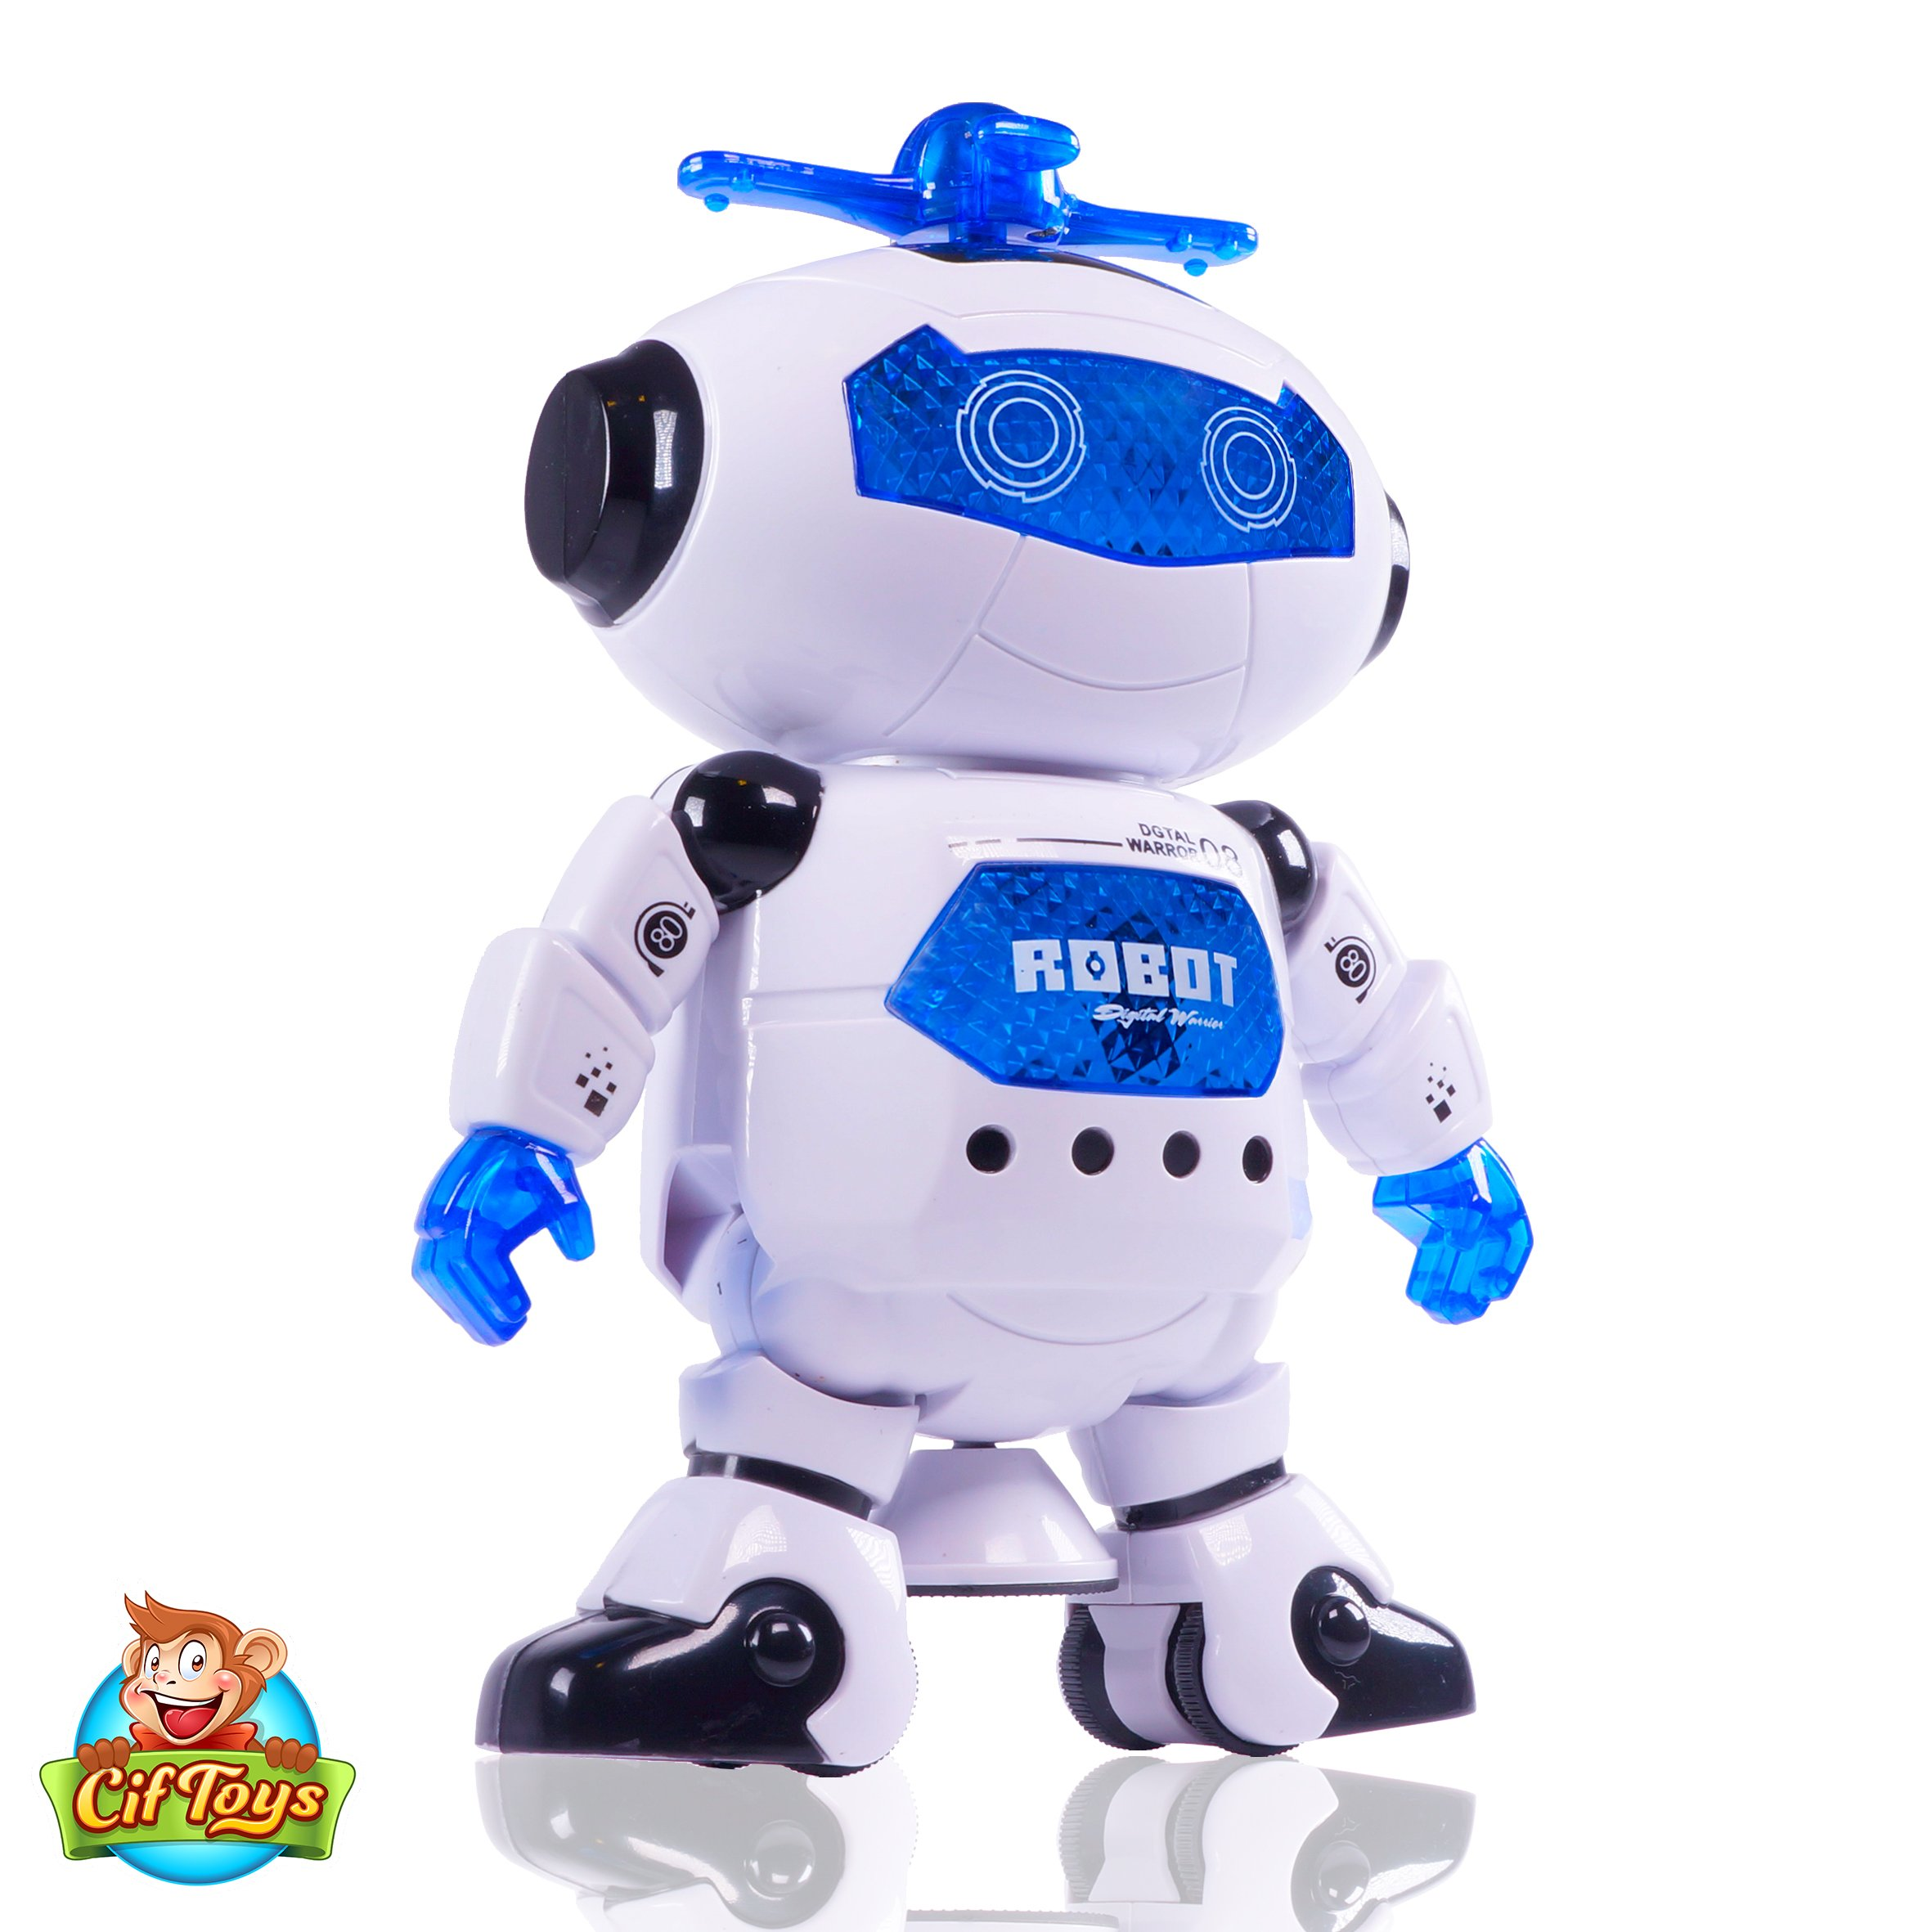 Boys Toys Electronic Walking Dancing Robot Toy - Toddler Toys - Best Gift for Boys and Girls 3 years old by CifToys (Image #2)